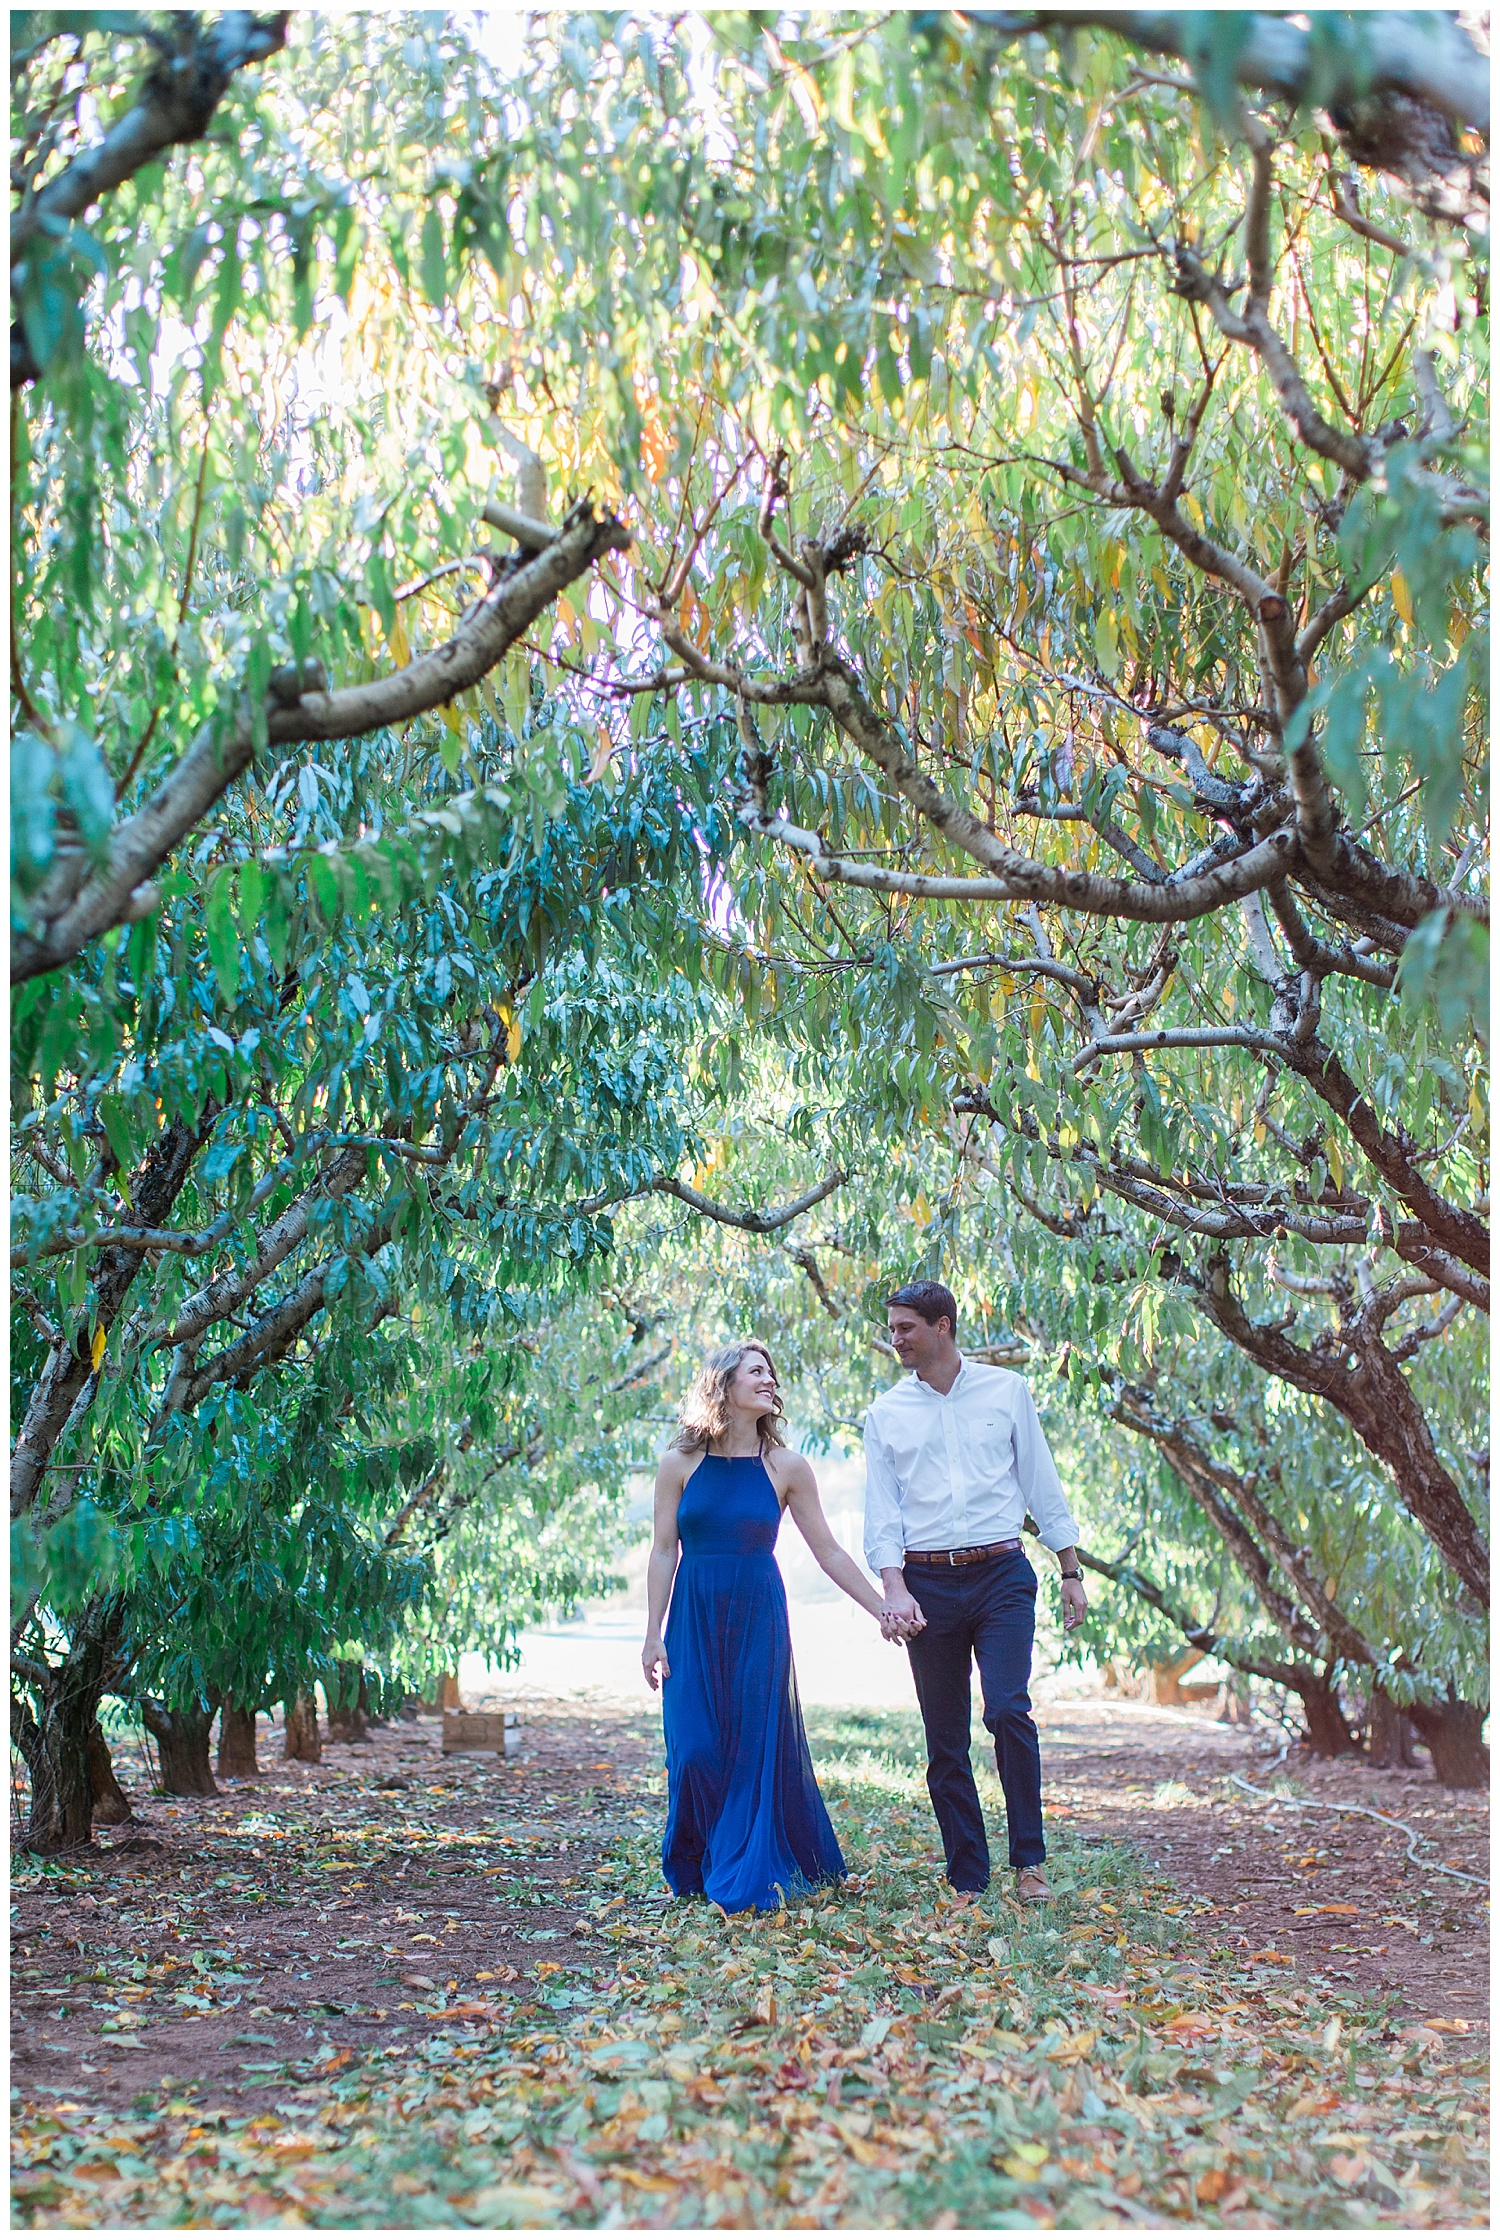 charlottesville_wedding_photographer_chiles_peach_orchard2.jpg